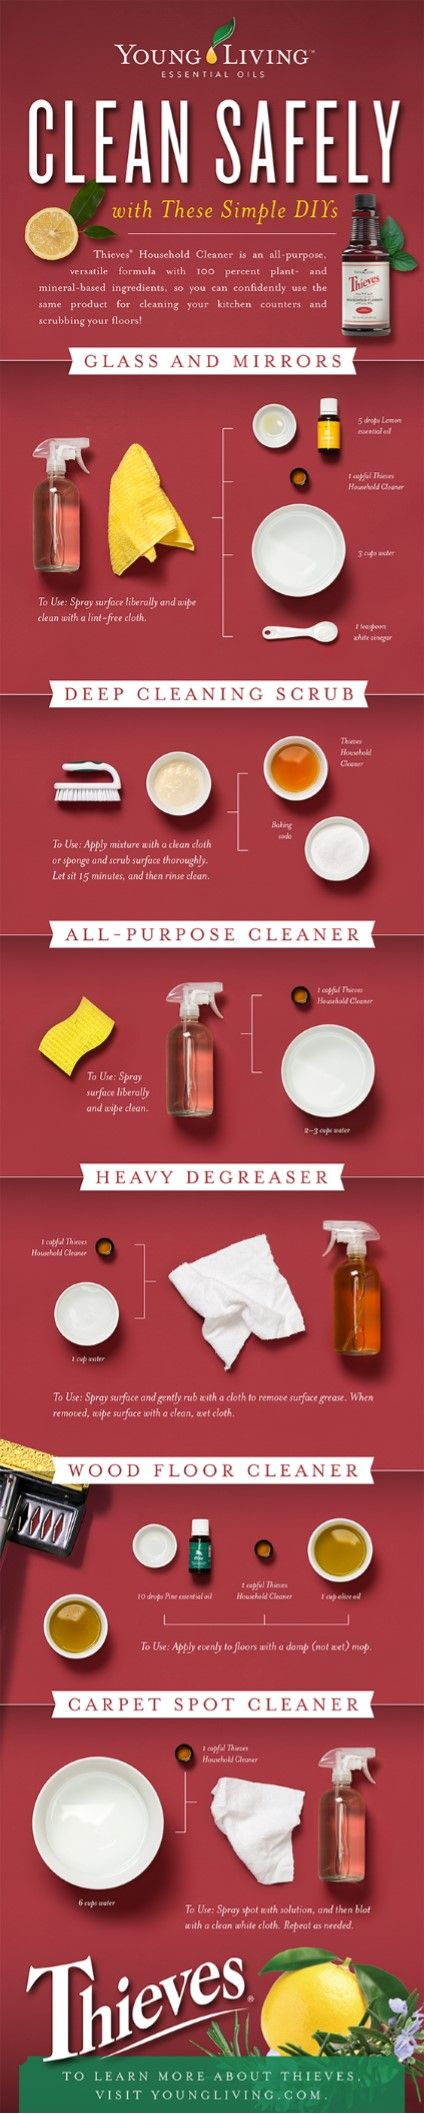 Enroller/sponsor id 1239597  Clean Safely with Young Living - Thieves Household Cleaner